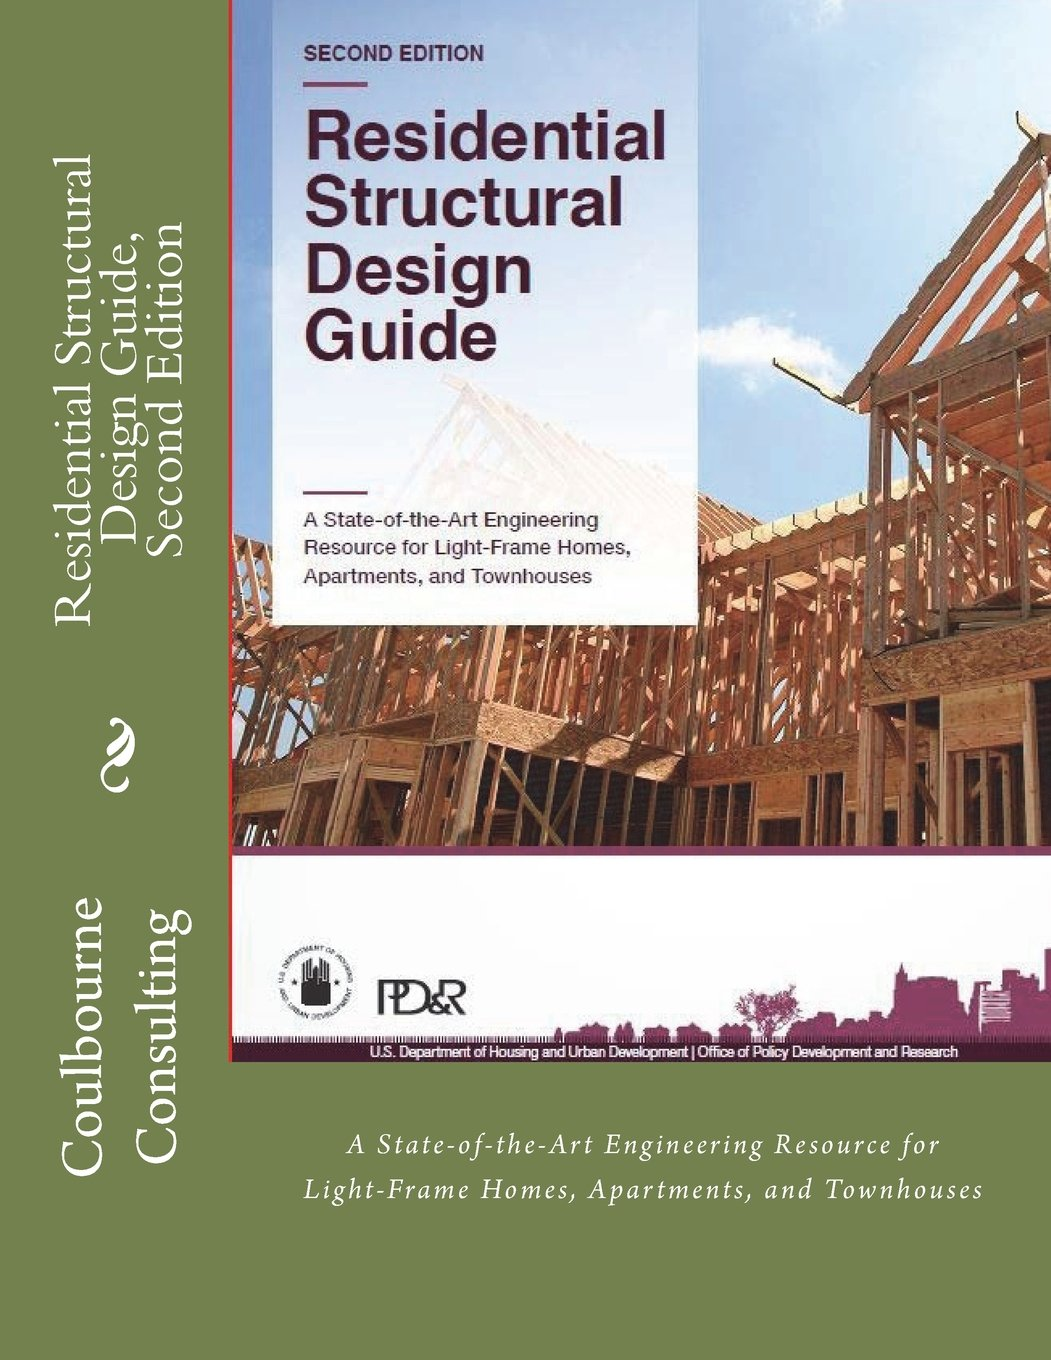 Residential Structural Design Guide, Second Edition: A State-of-the-Art Engineering Resource for Light-Frame Homes, Apartments, and Townhouses PDF